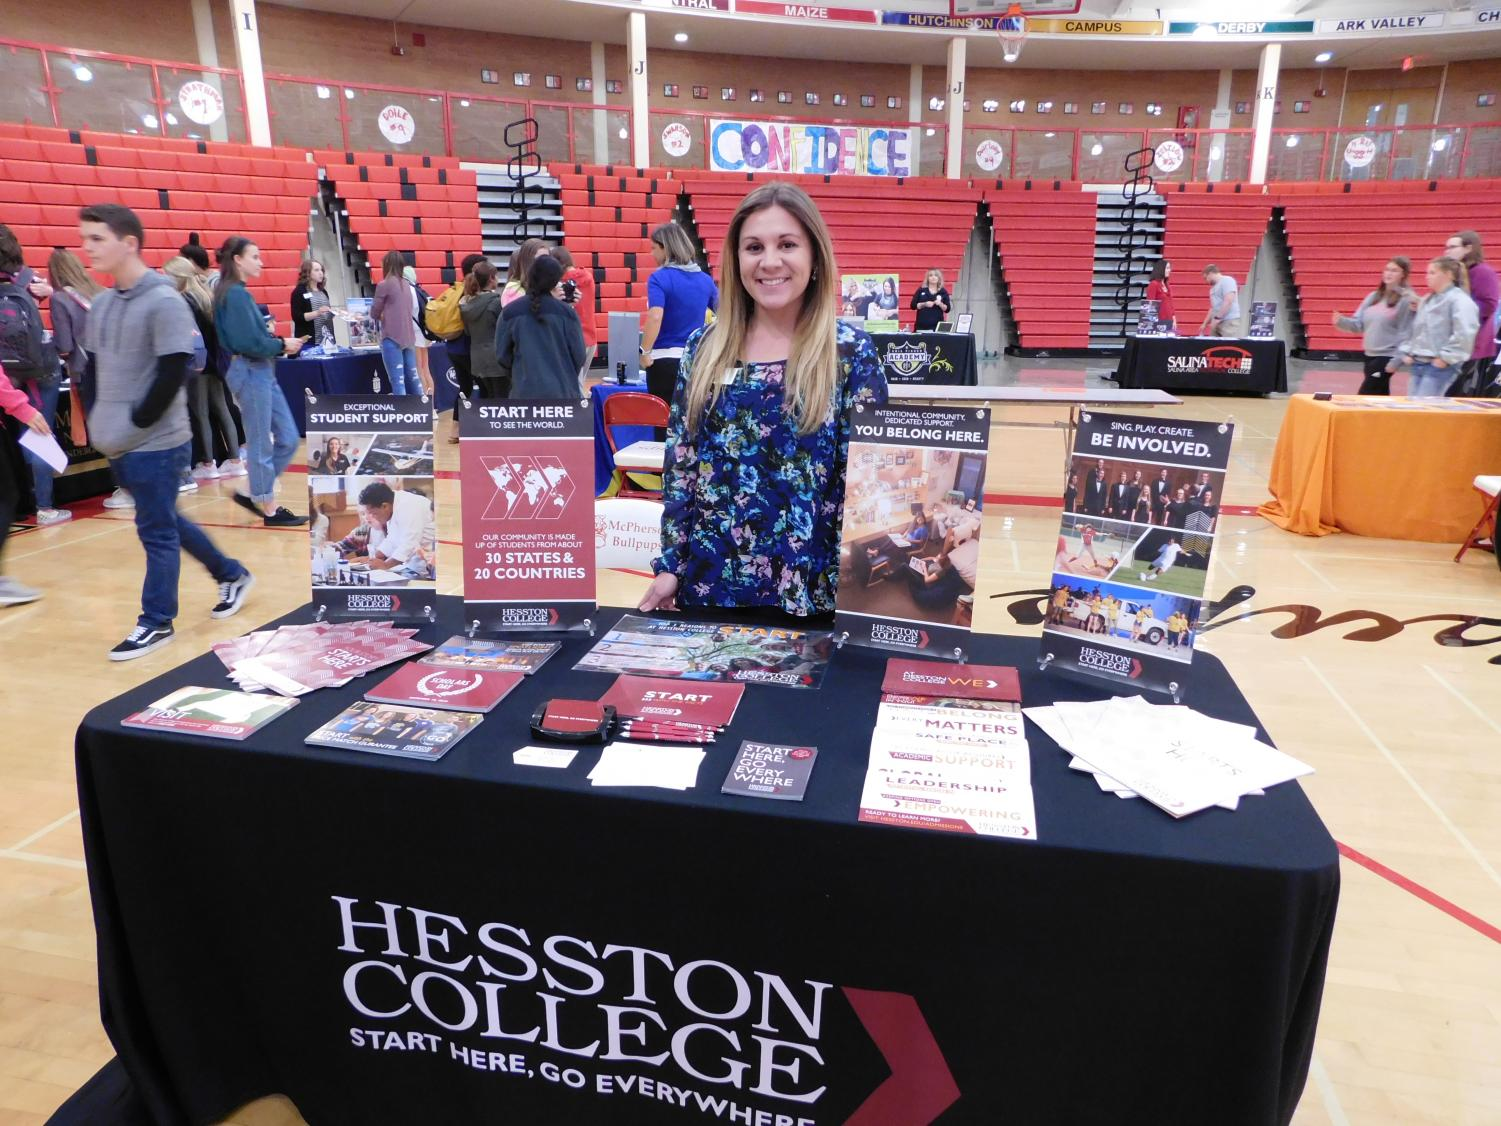 Hesston+College+representative+stands+tall+and+smiles+while+representing+her+booth.++